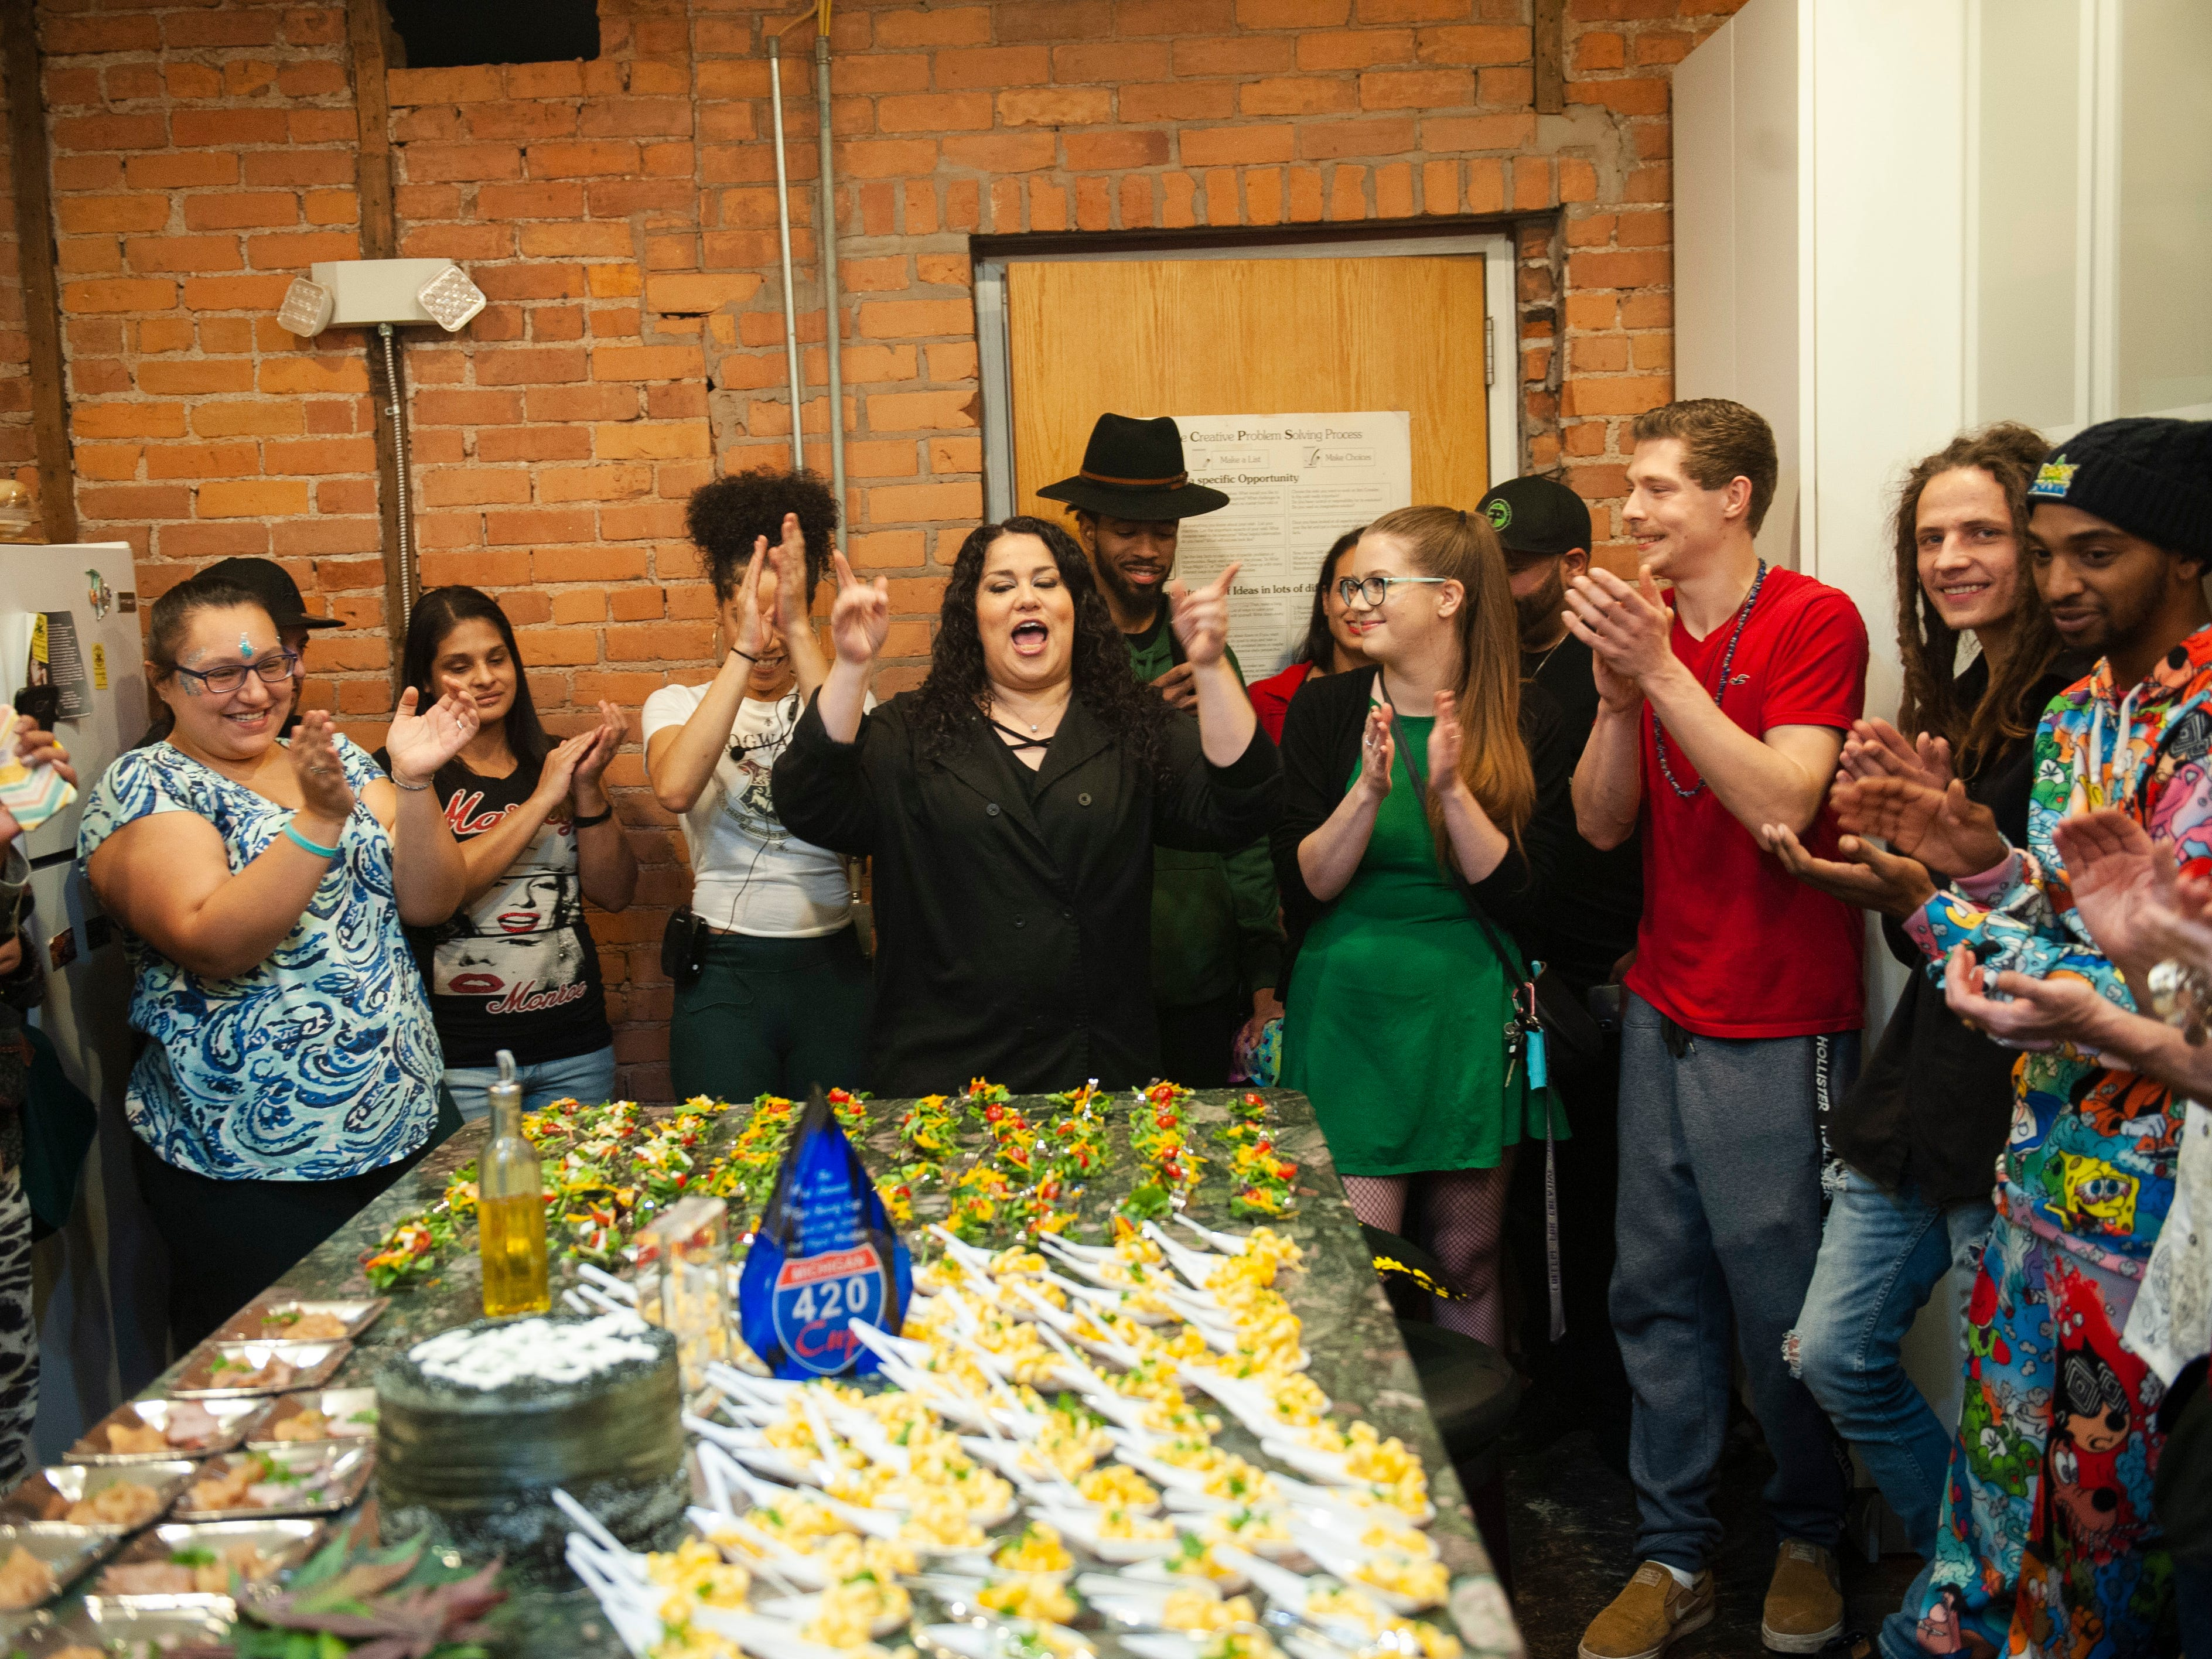 """Cannabis Concepts chef Gigi Diaz, center, celebrates her birthday by welcoming event guests to sample THC-infused edibles from sweets to pork loin, salad to mac and cheese, have a good time and """"get lit"""" during """"The Art of Cannabis"""" tasting and art exhibition at the Cannabis Counsel in Detroit on Saturday, Dec. 22, 2018."""